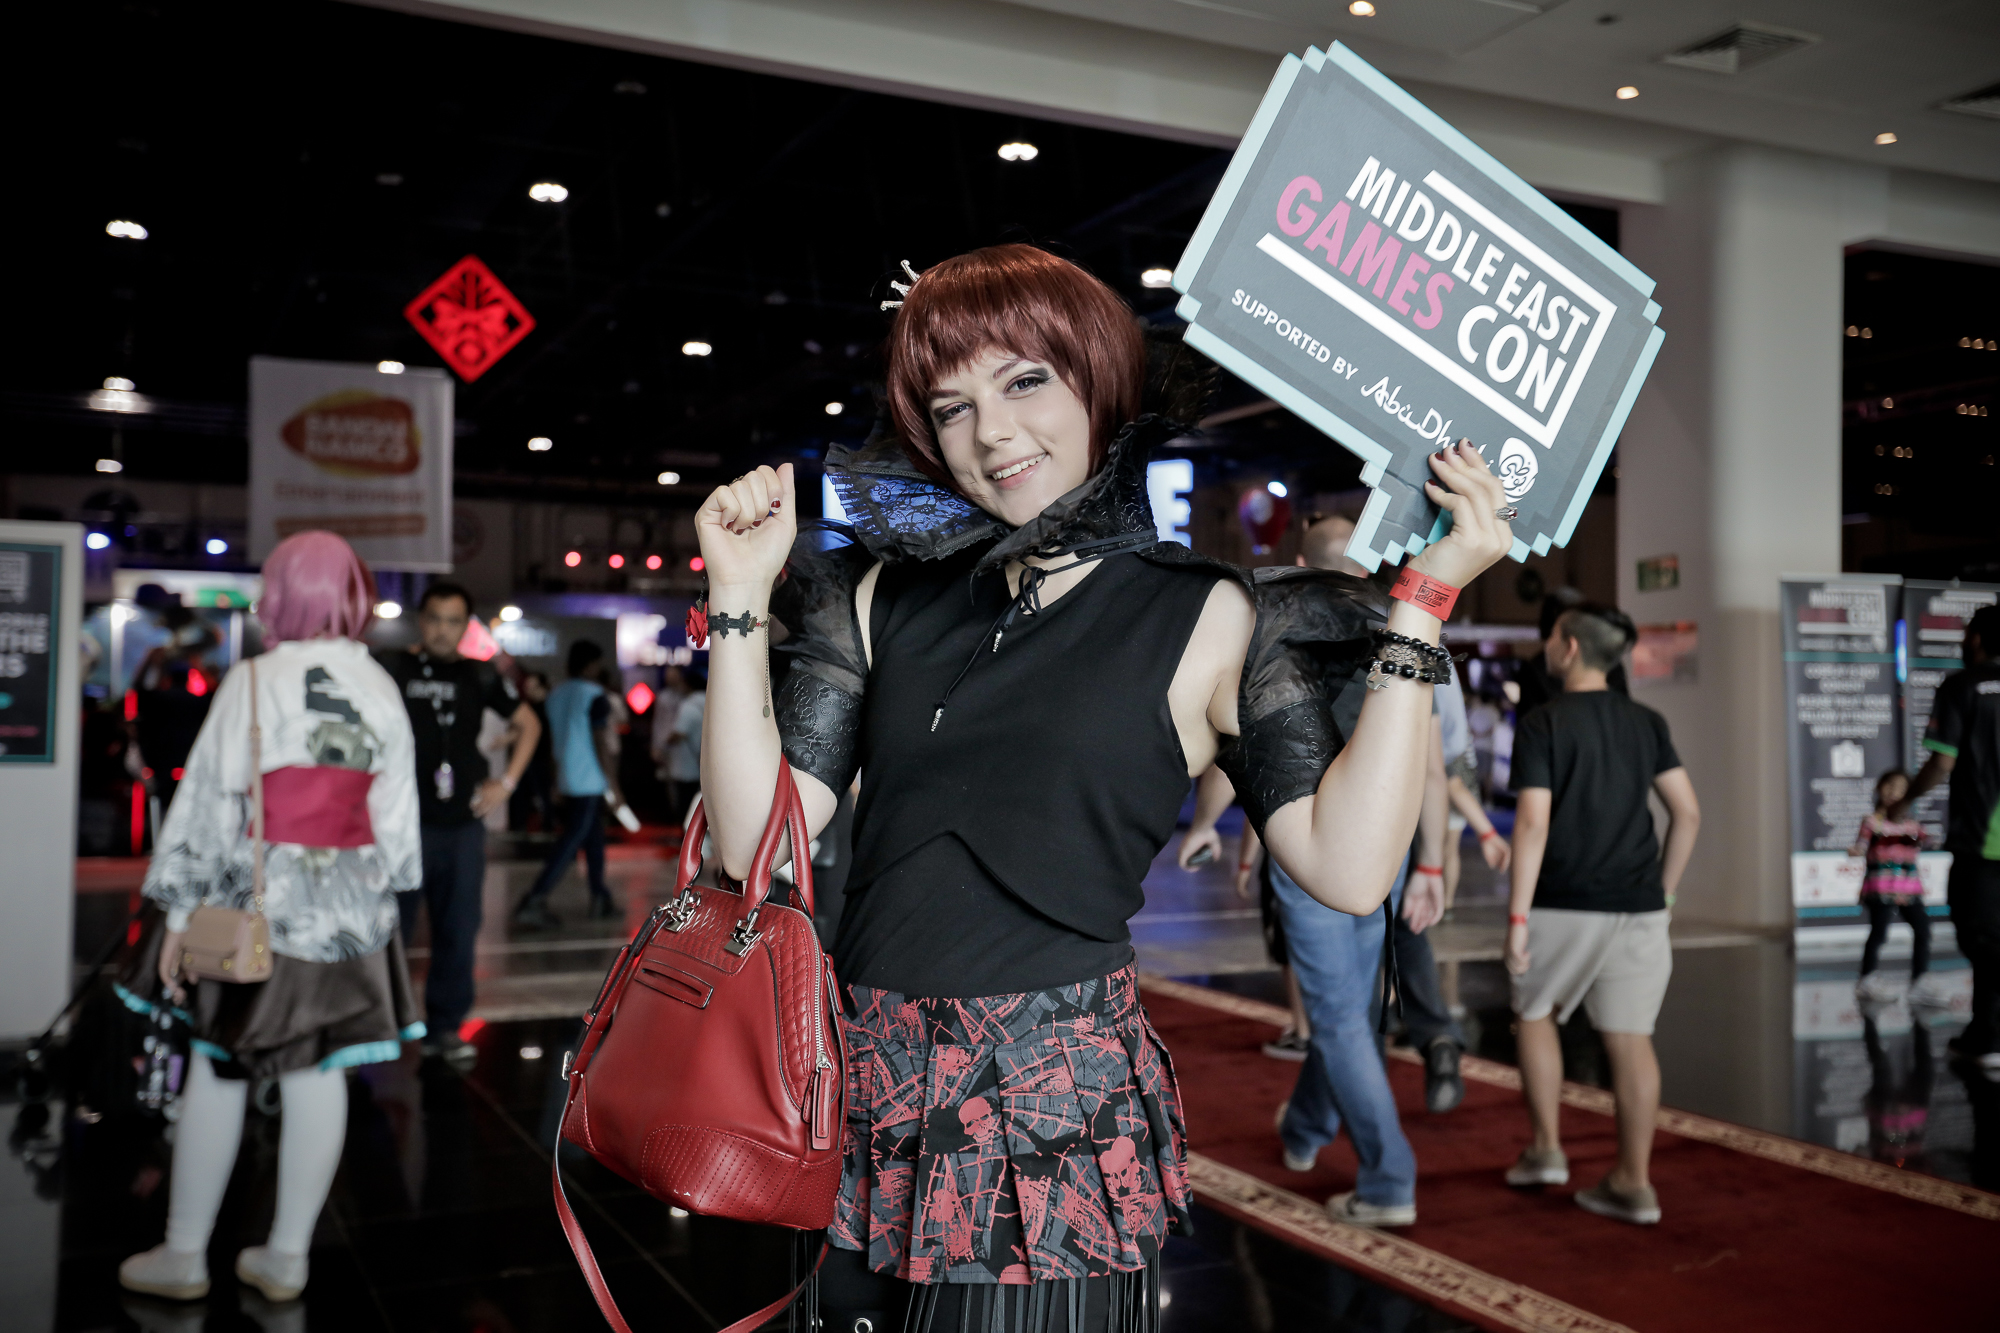 Middle East's Largest Gaming Festival, Games Con, Comes to Abu Dhabi